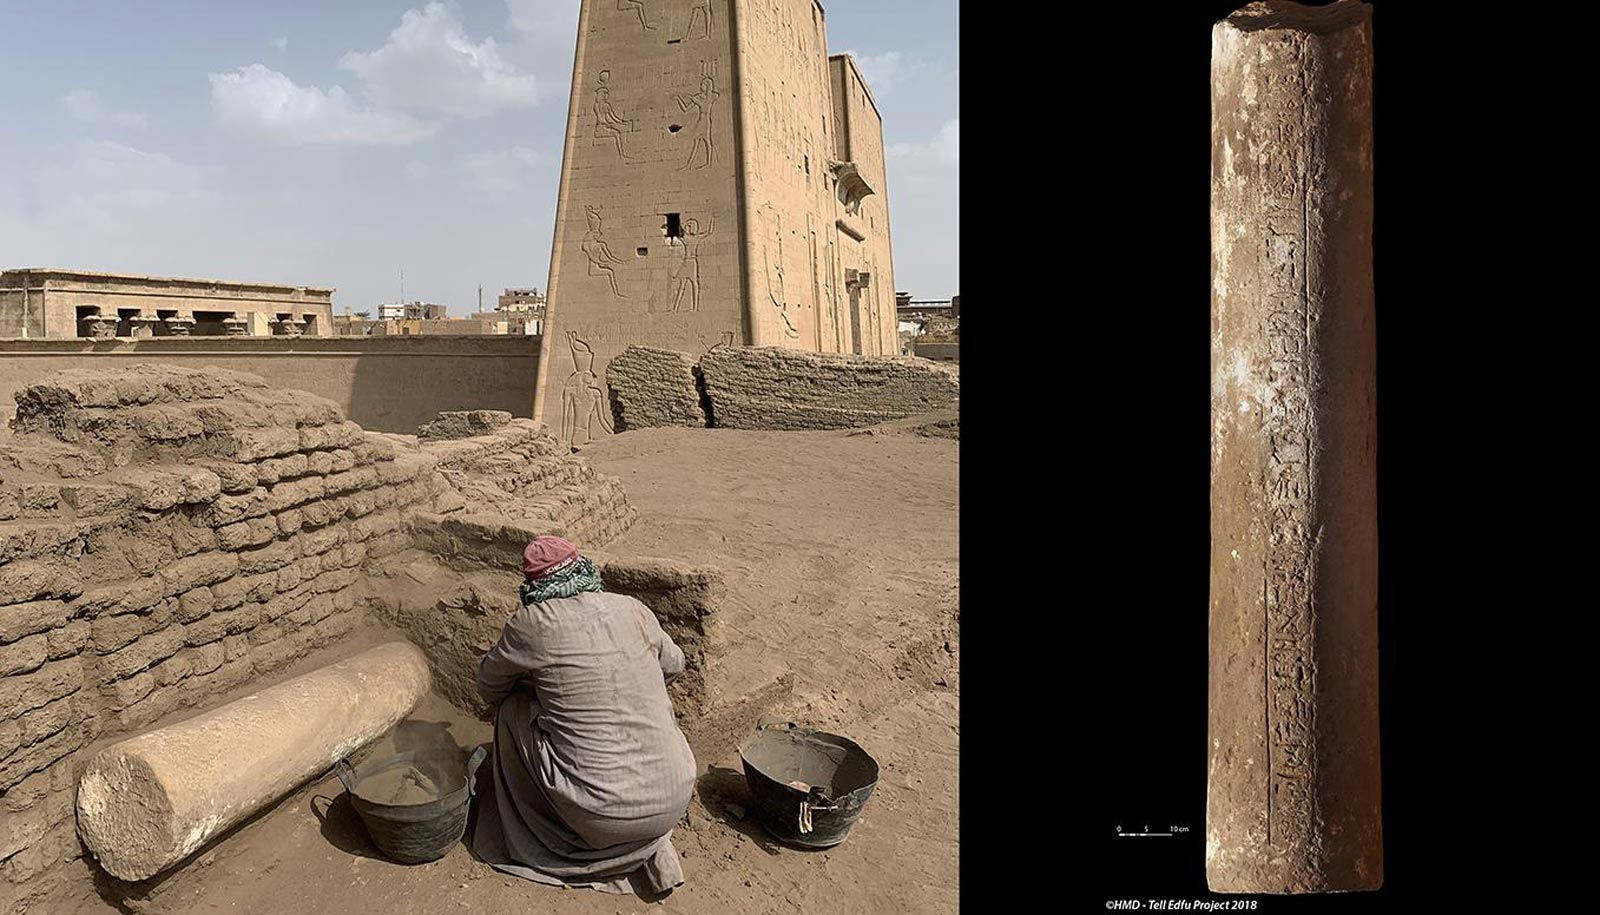 The column area under excavation (left) and the sandstone column inscribed with the name of the high priest of the temple of Horus, Amenmose (right).